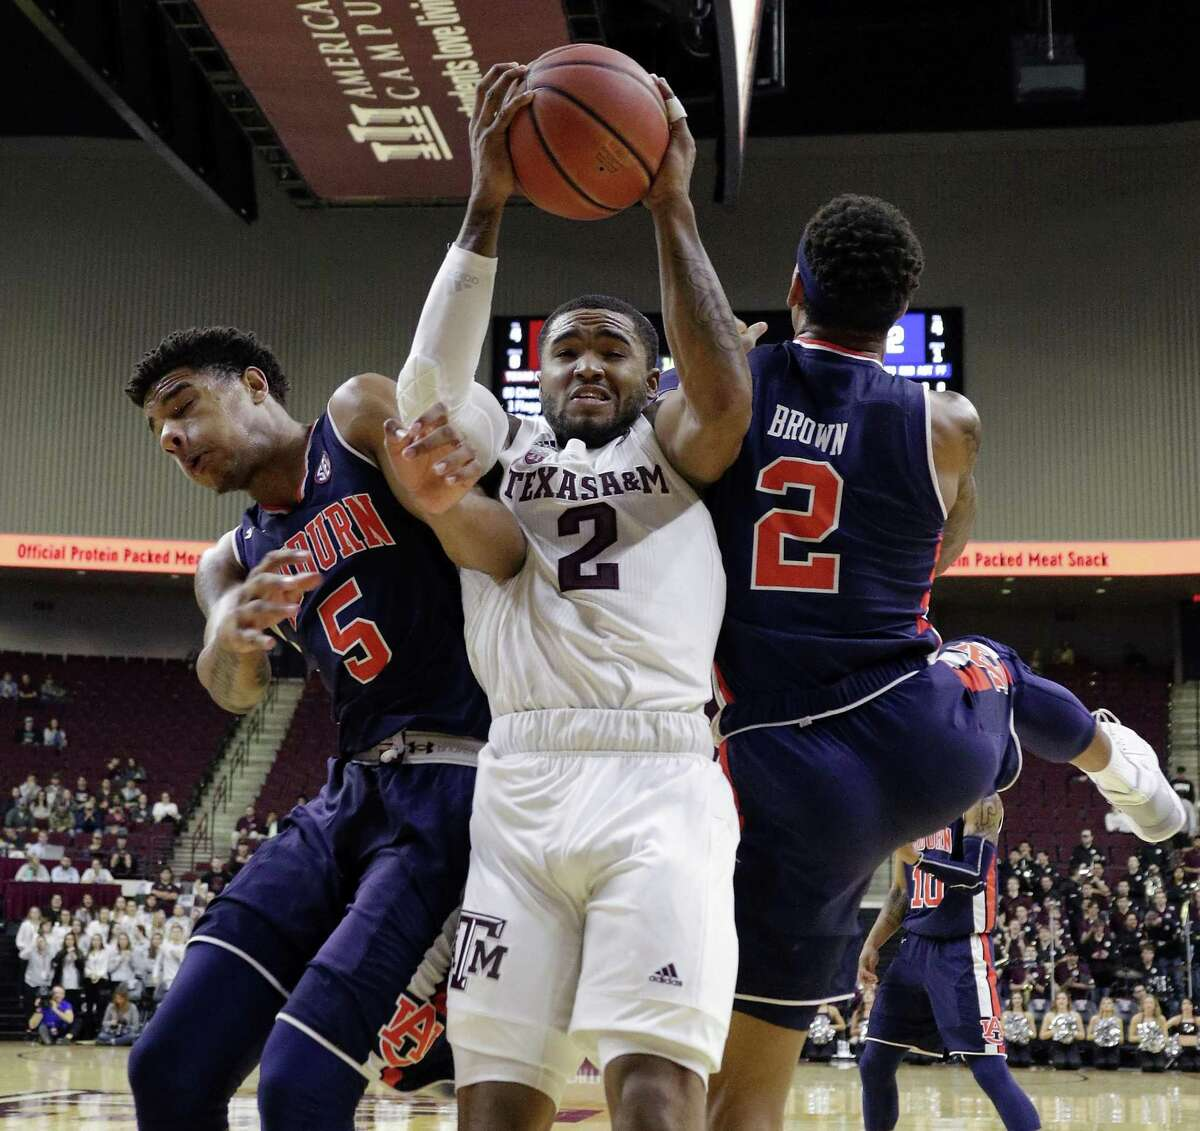 Texas A&M's TJ Starks (2) gets caught in a squeeze play between Auburn's Chuma Okeke, left, and Bryce Brown.